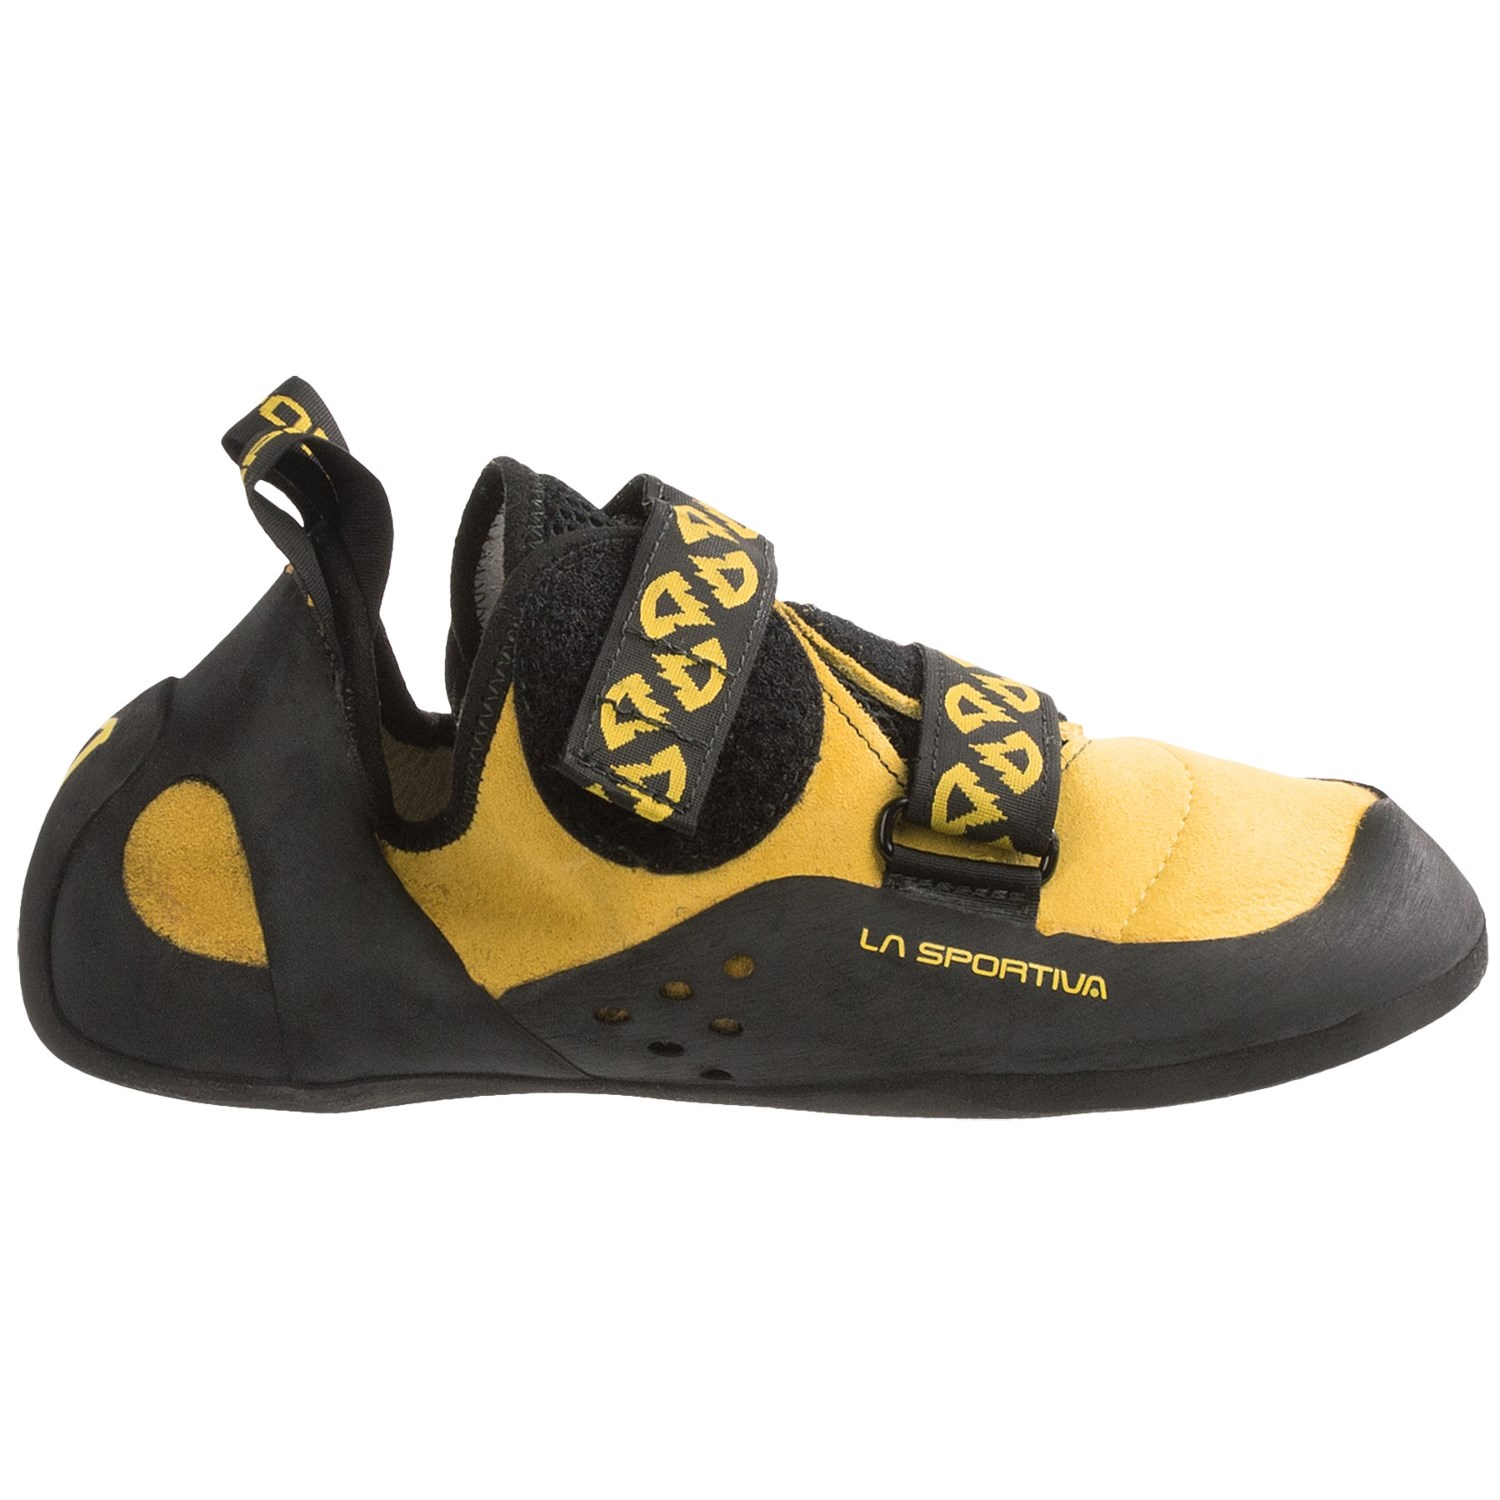 La Sportiva Katana Climbing Shoes For Men And Women